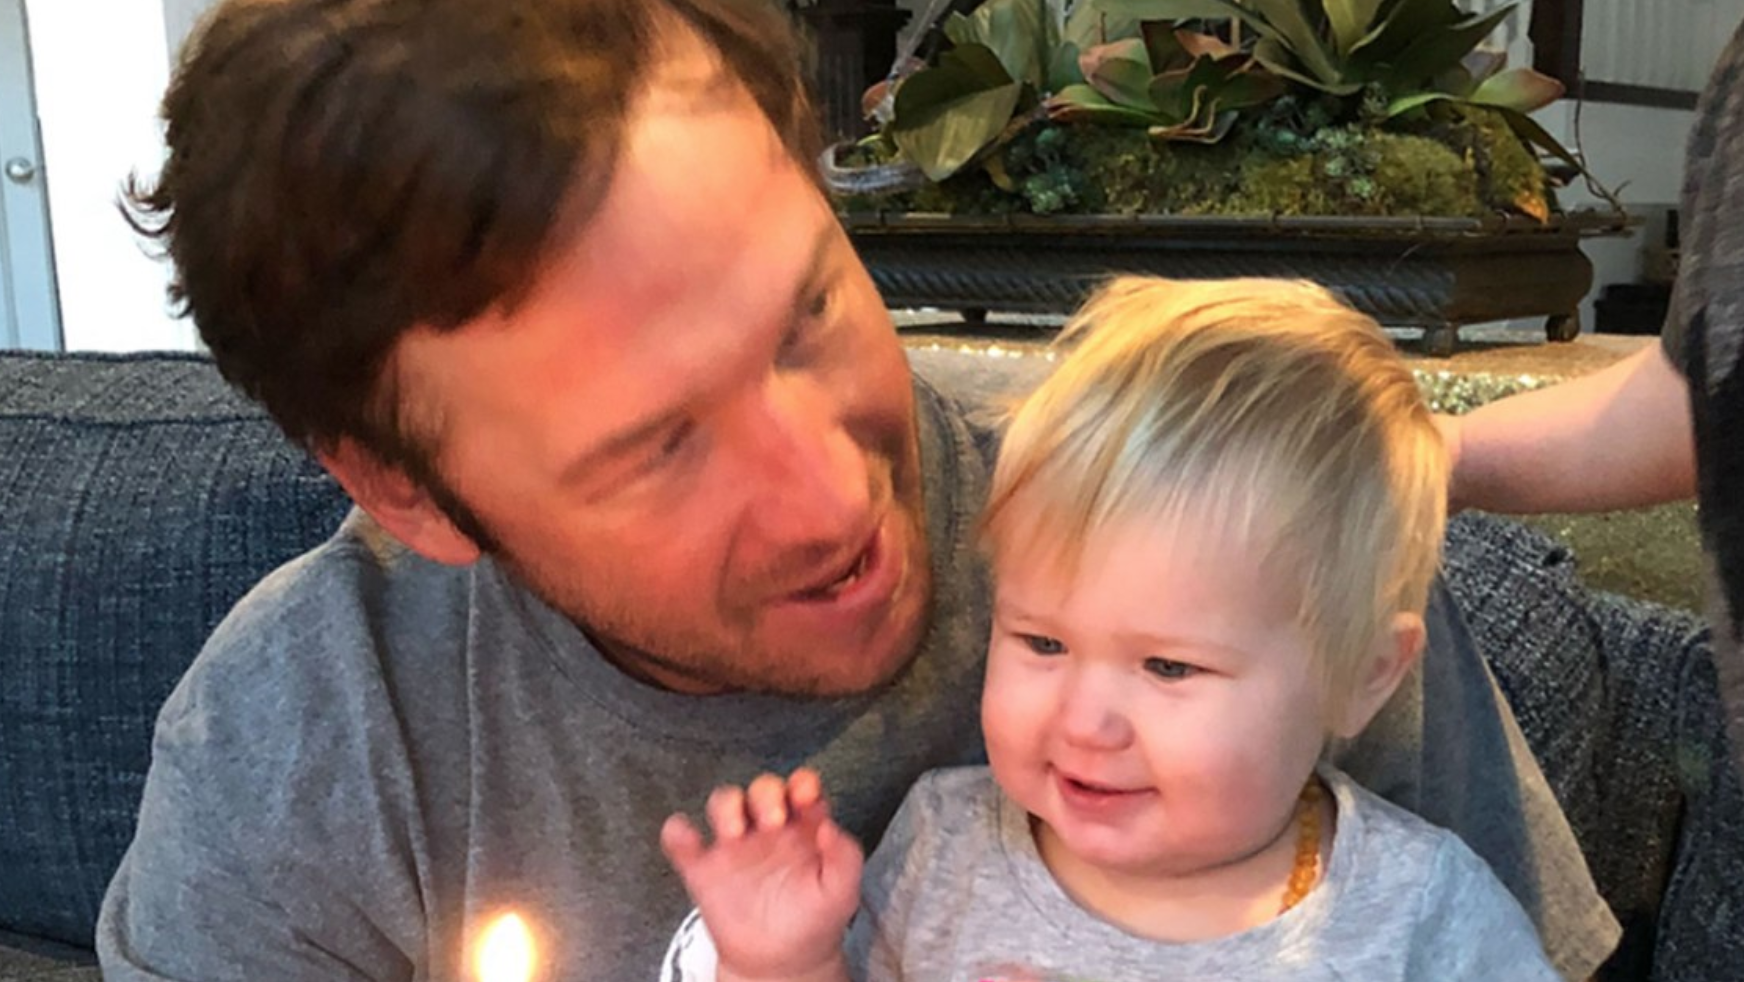 Bode Miller Wants to End the 'Stigma' Around Pain of Losing a Child After Daughter's Death